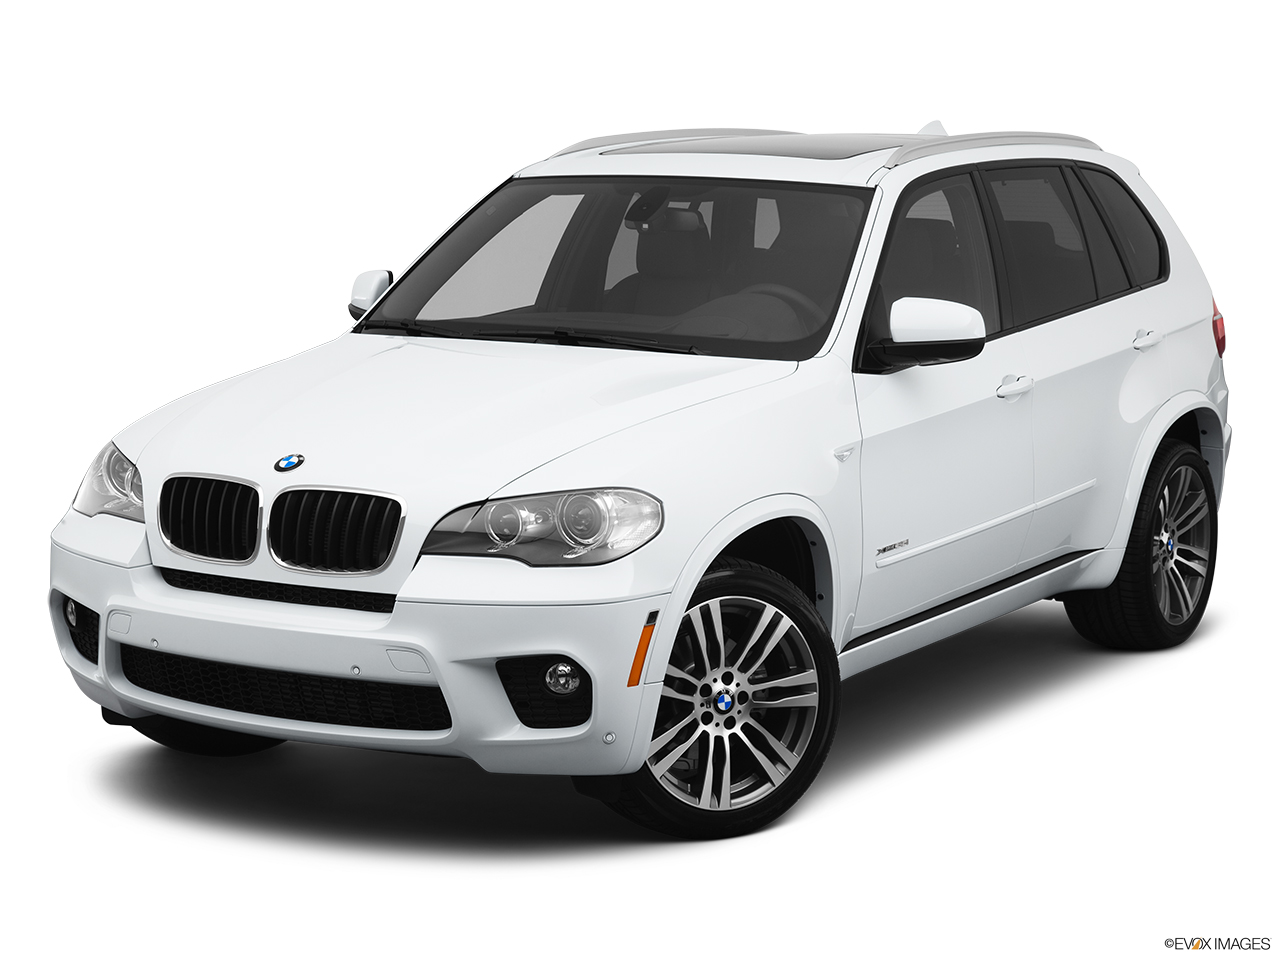 2014 bmw x5 awd 35d. Black Bedroom Furniture Sets. Home Design Ideas